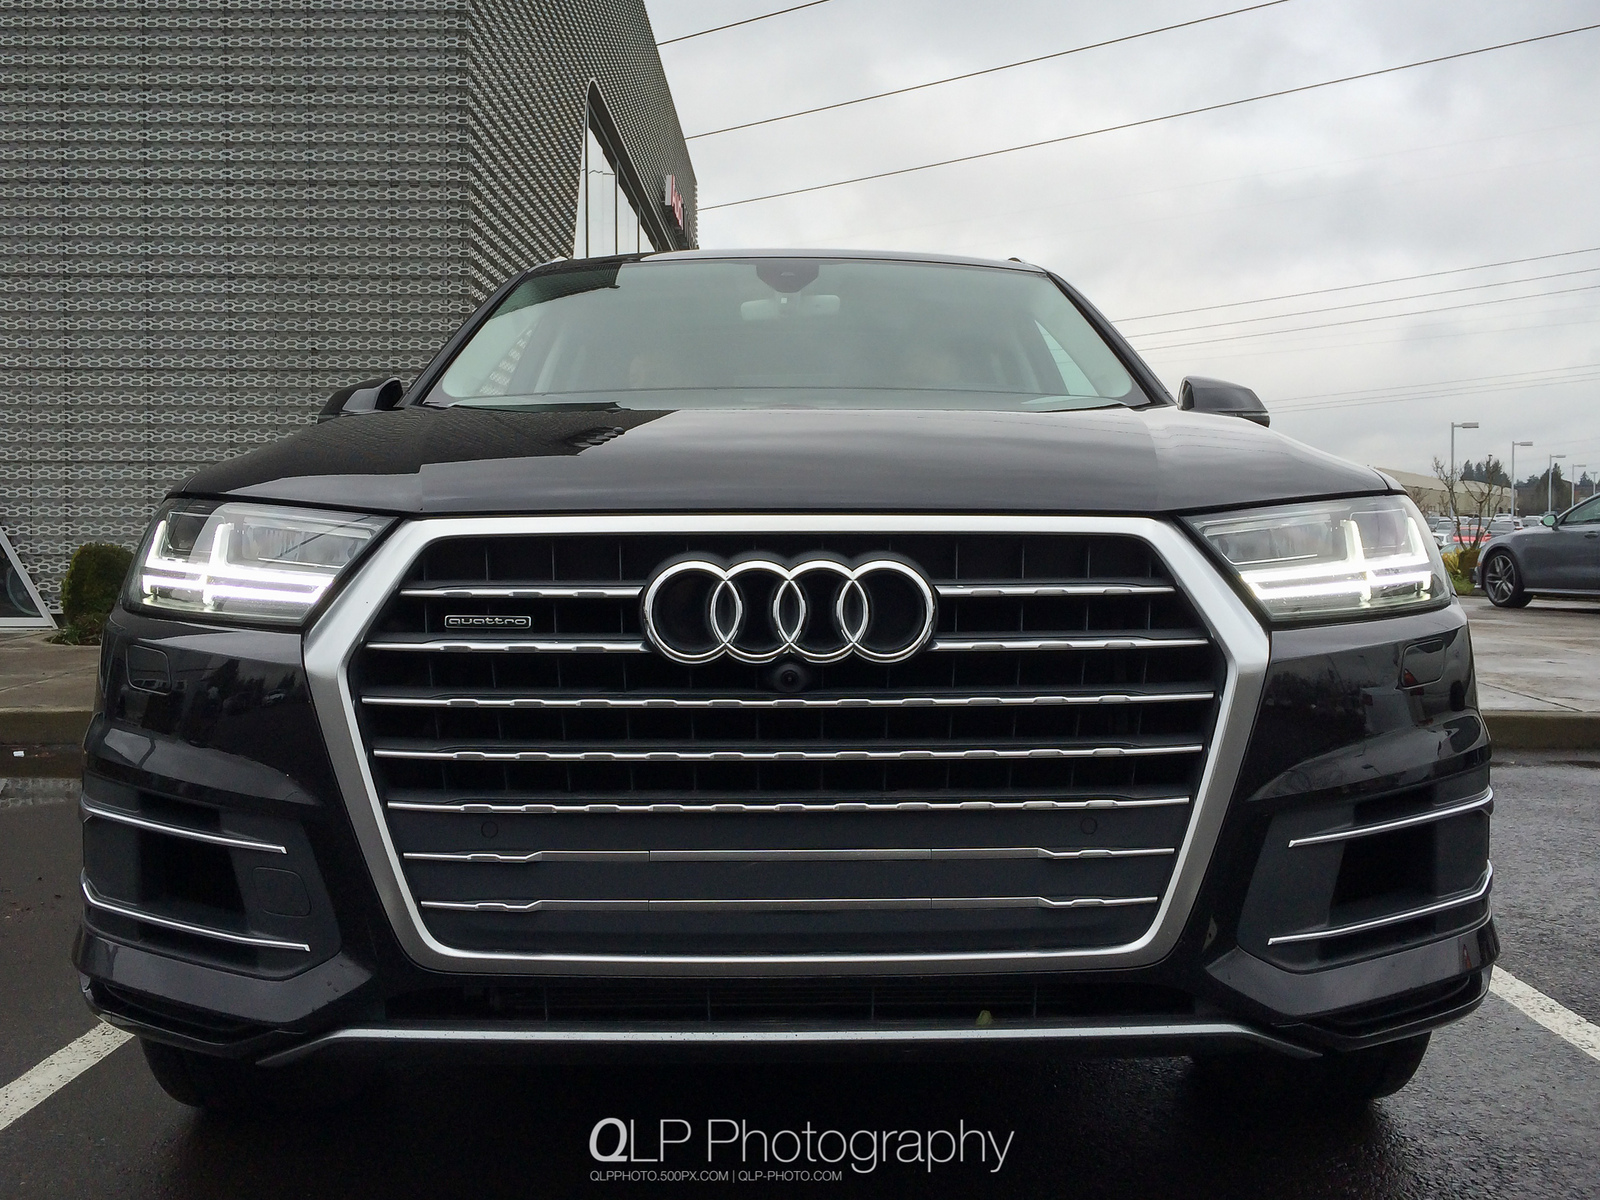 In Photos and Quick Impressions: The New 2017 Audi Q7